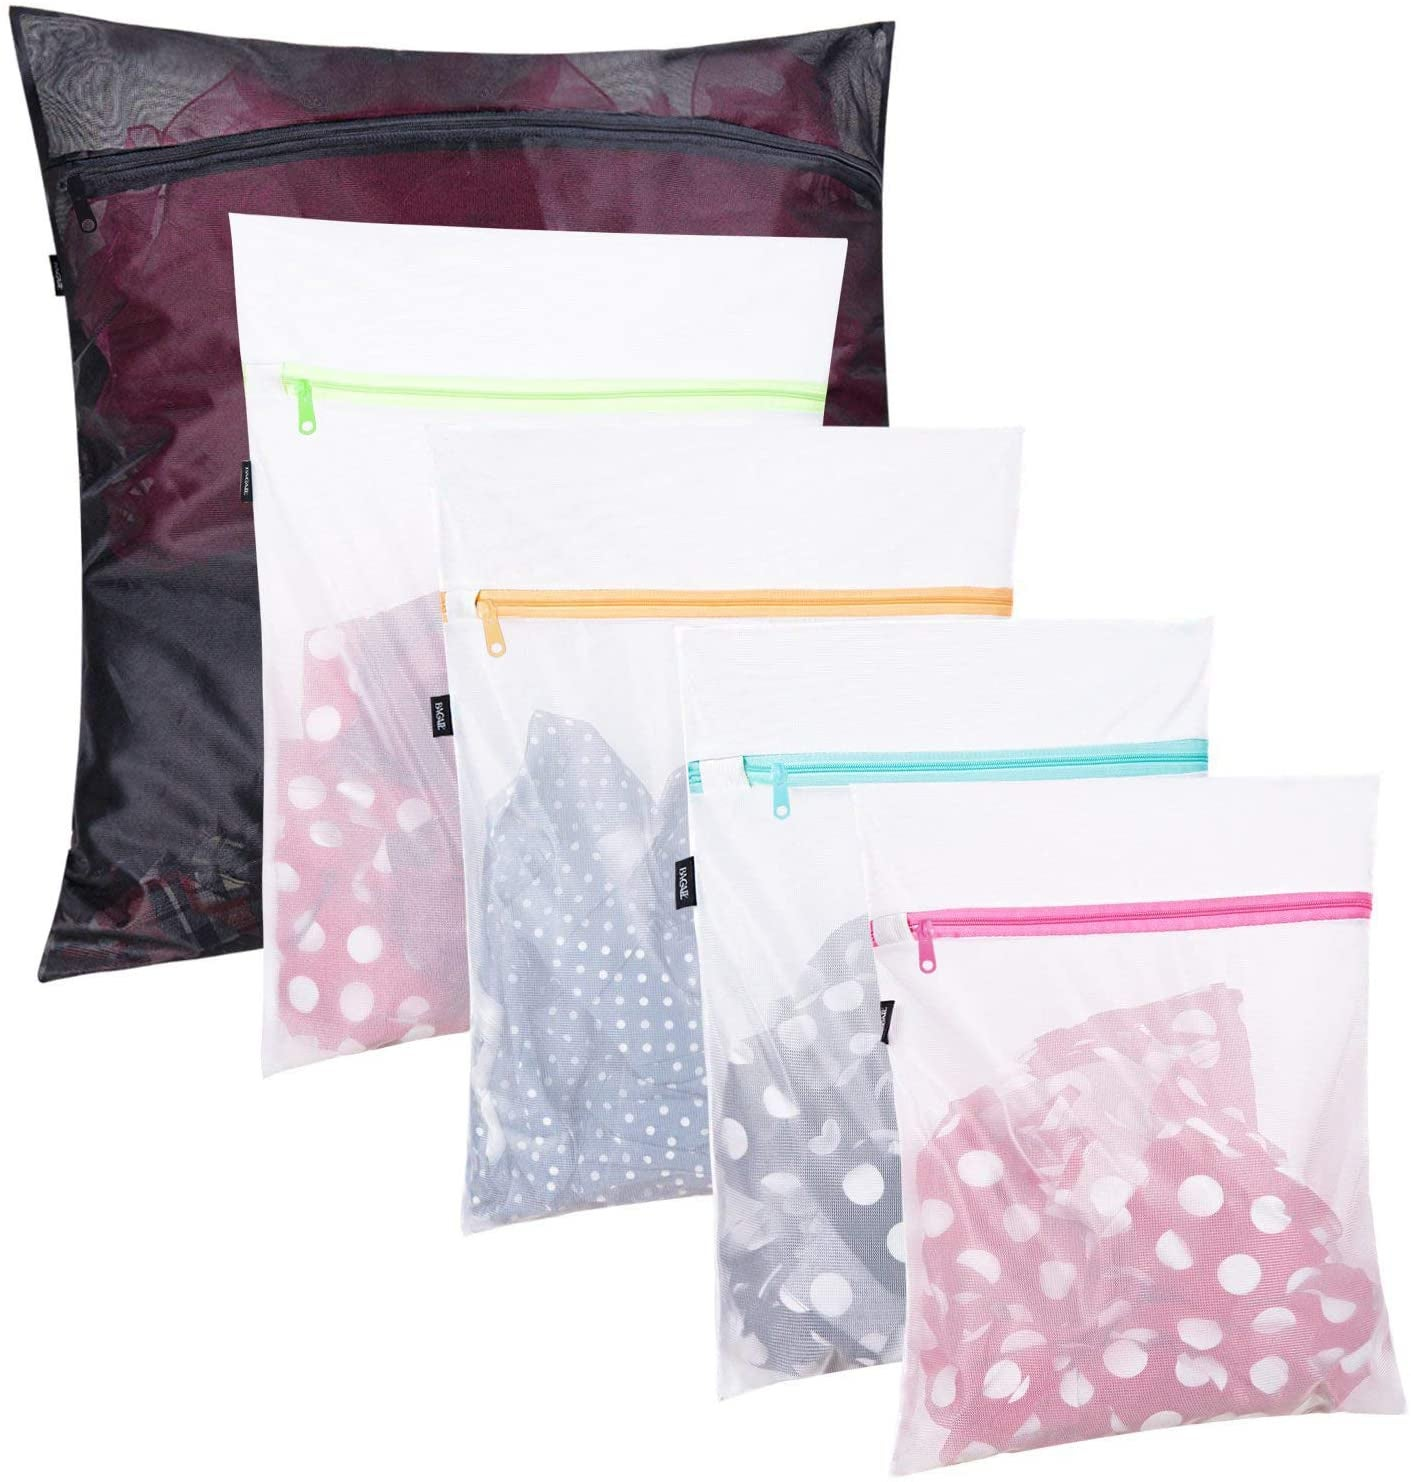 set of five different-sized mesh laundry bags with clothes inside